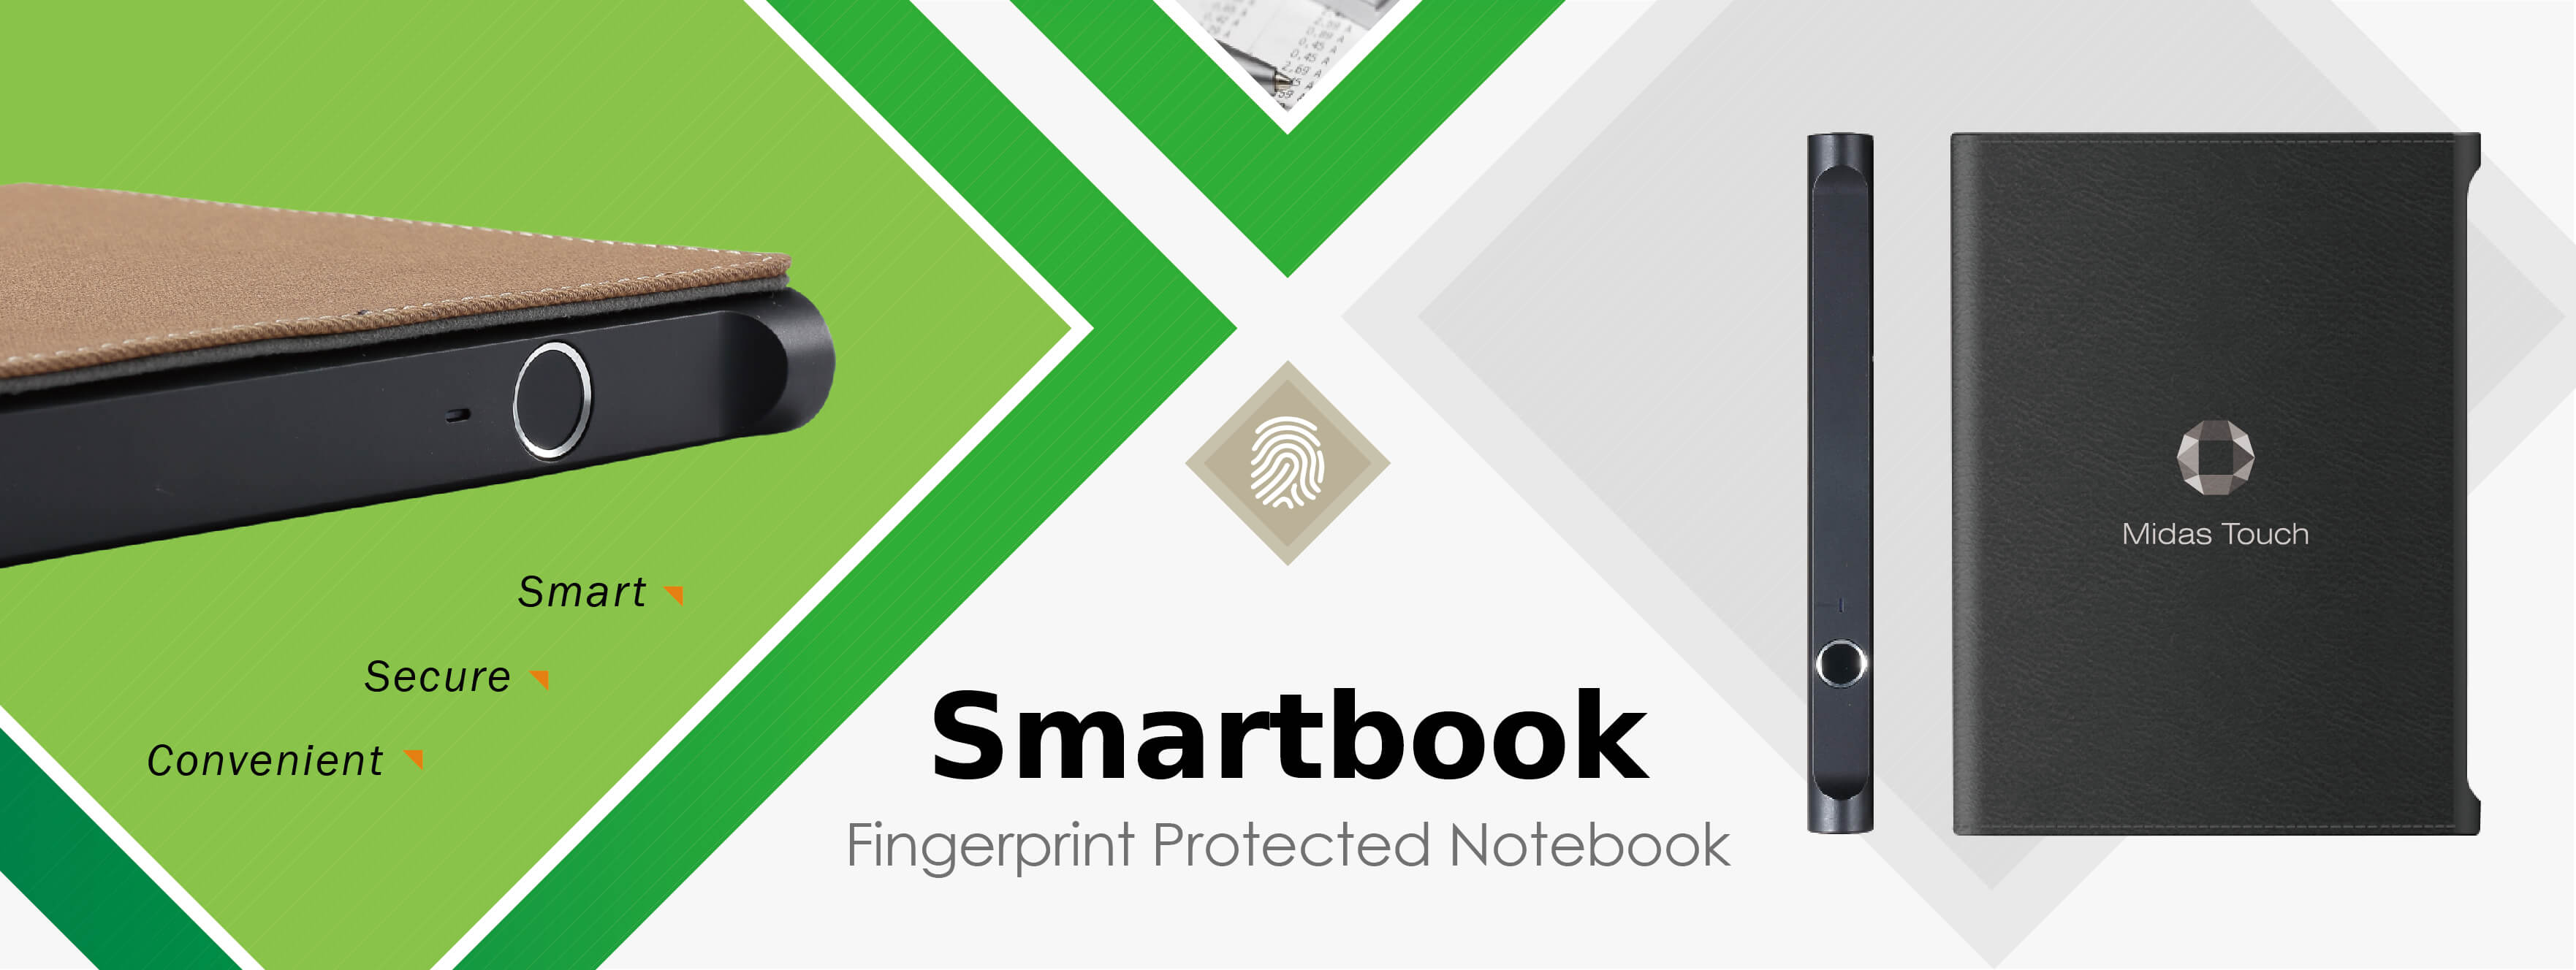 Midas Touch Smartbook Fingerprint Protected Notebook